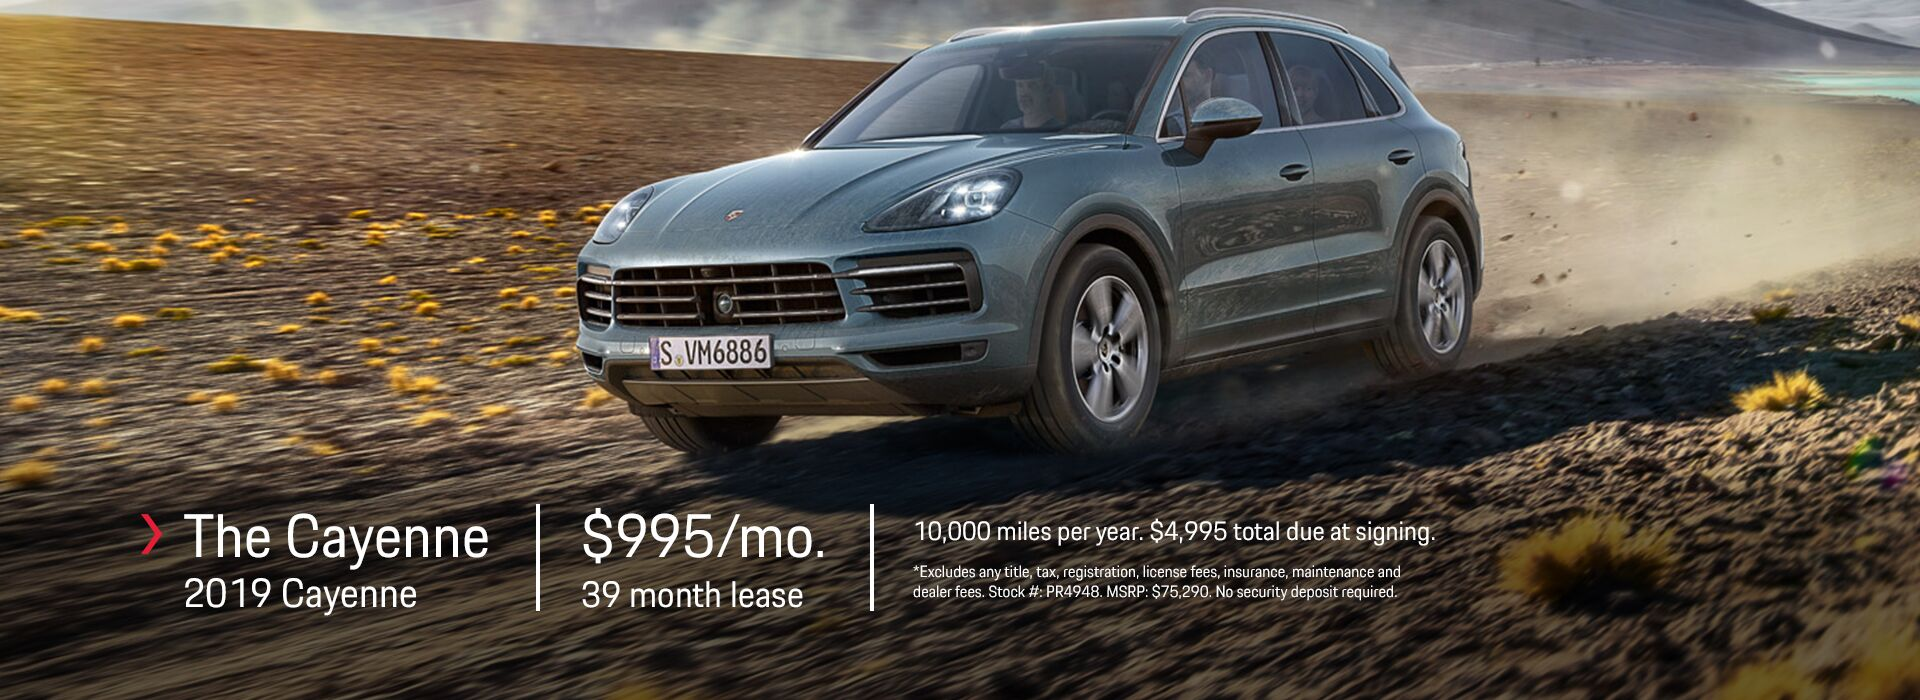 2019 Cayenne Lease Offer